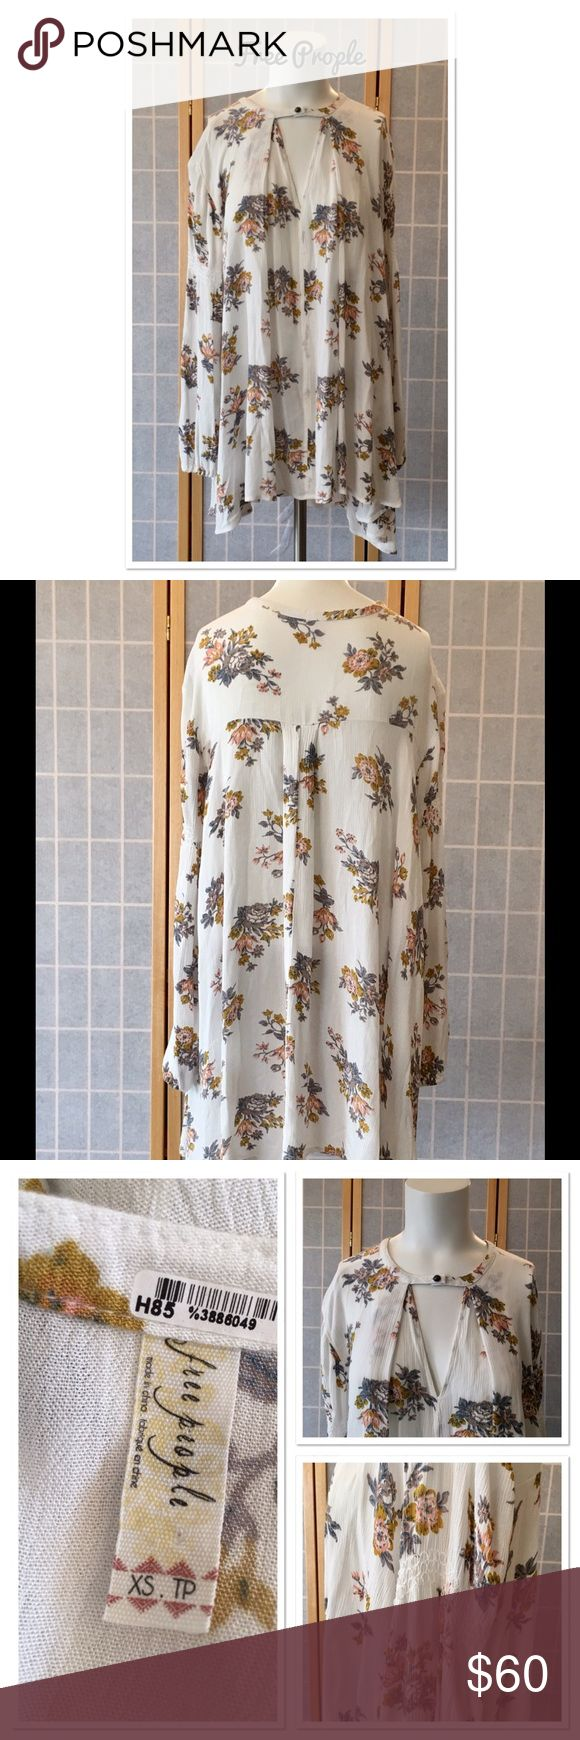 """Free People Retro Print Swing Tunic Keyhole opening at bust. Decorative band on arms and elastic at wrist. Variable length from 30"""" to 34"""". 22.5"""" sleeve length. Excellent condition. Free People Tops Tunics"""